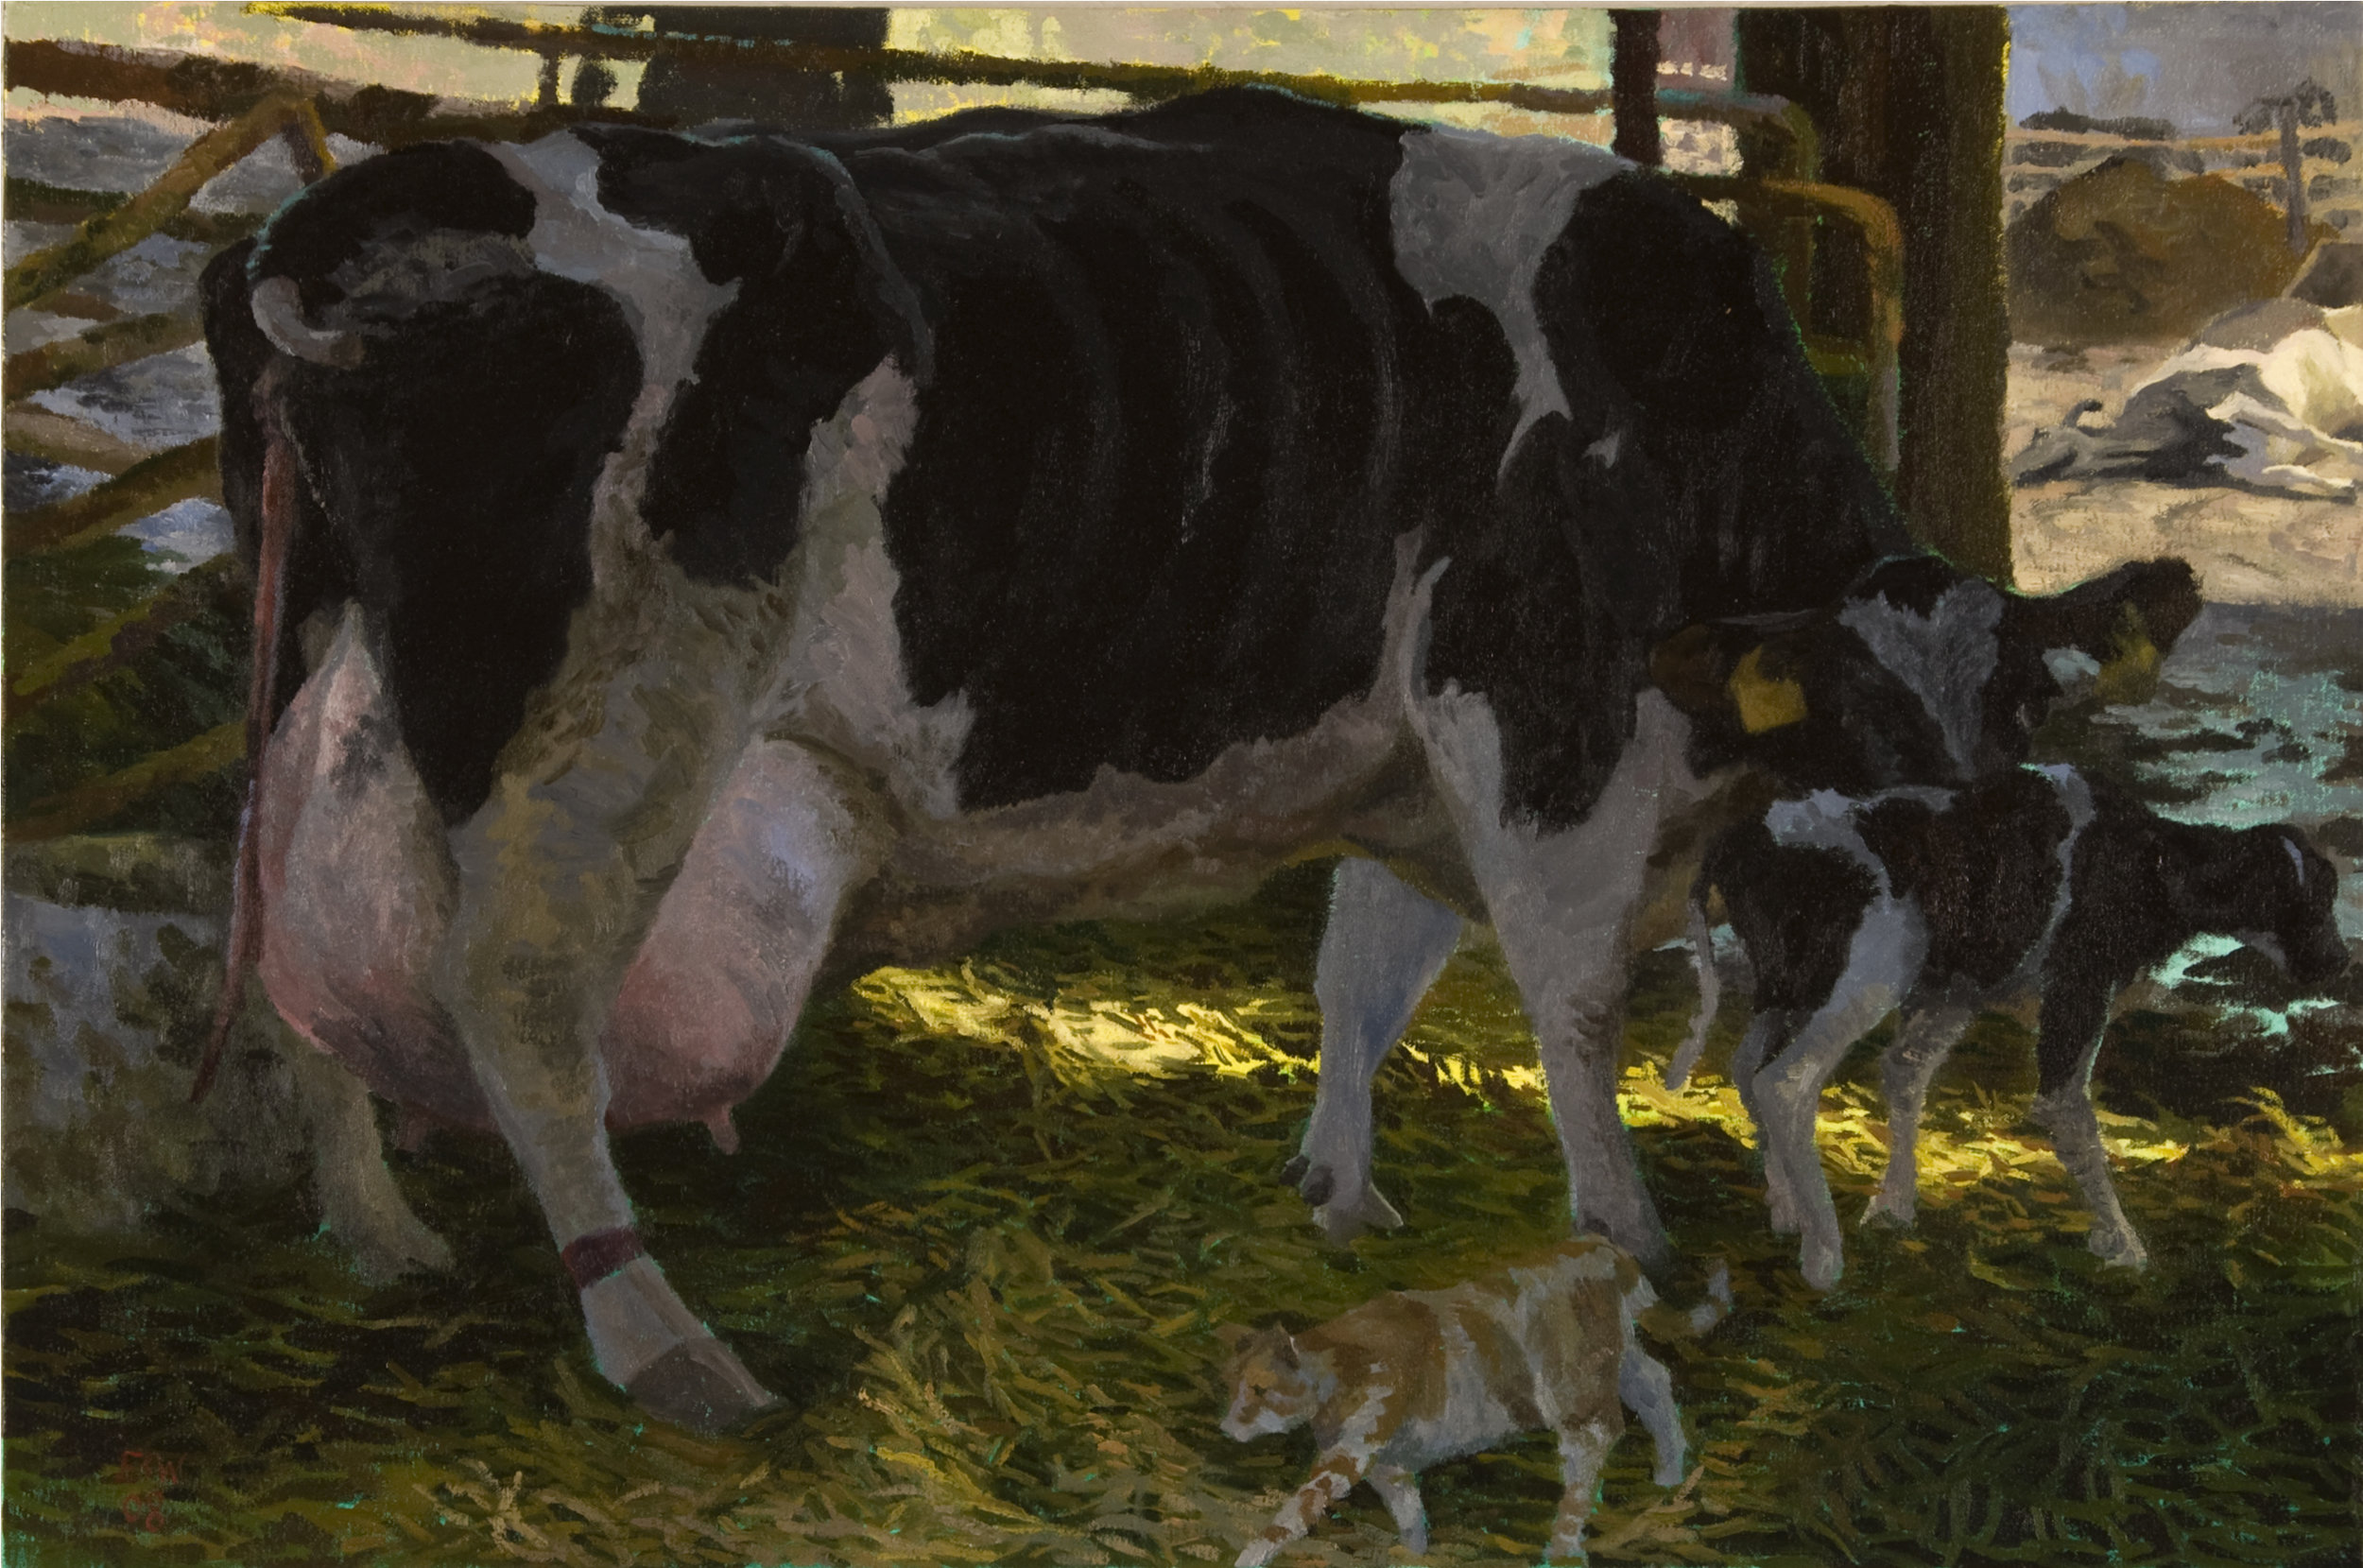 Cow and Calf Study for Cycle Of Life